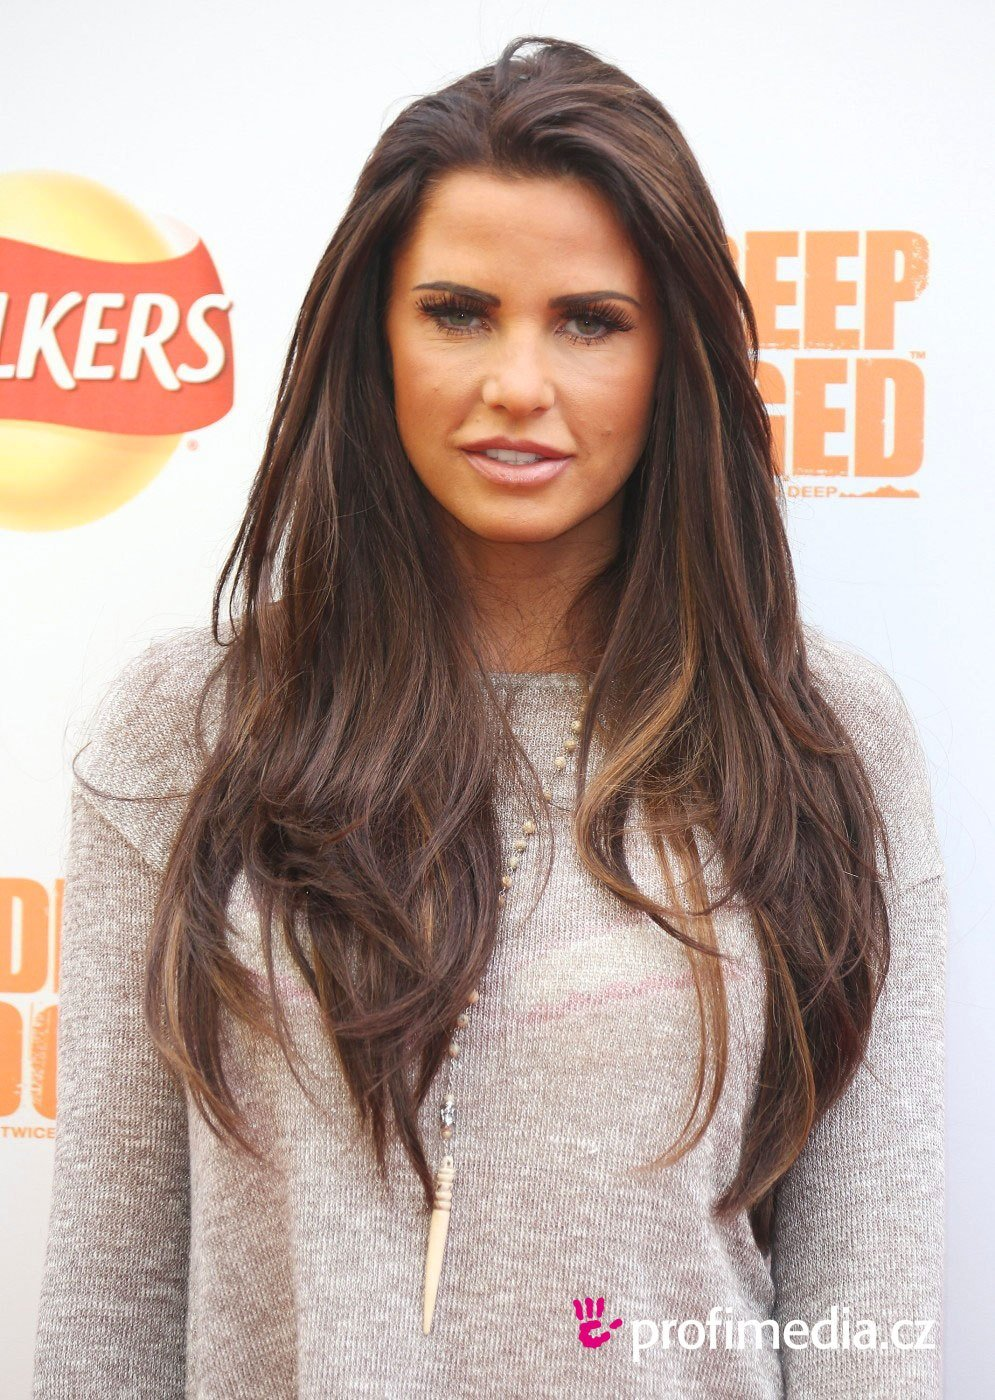 The Best Katie Price Hairstyle Easyhairstyler Pictures